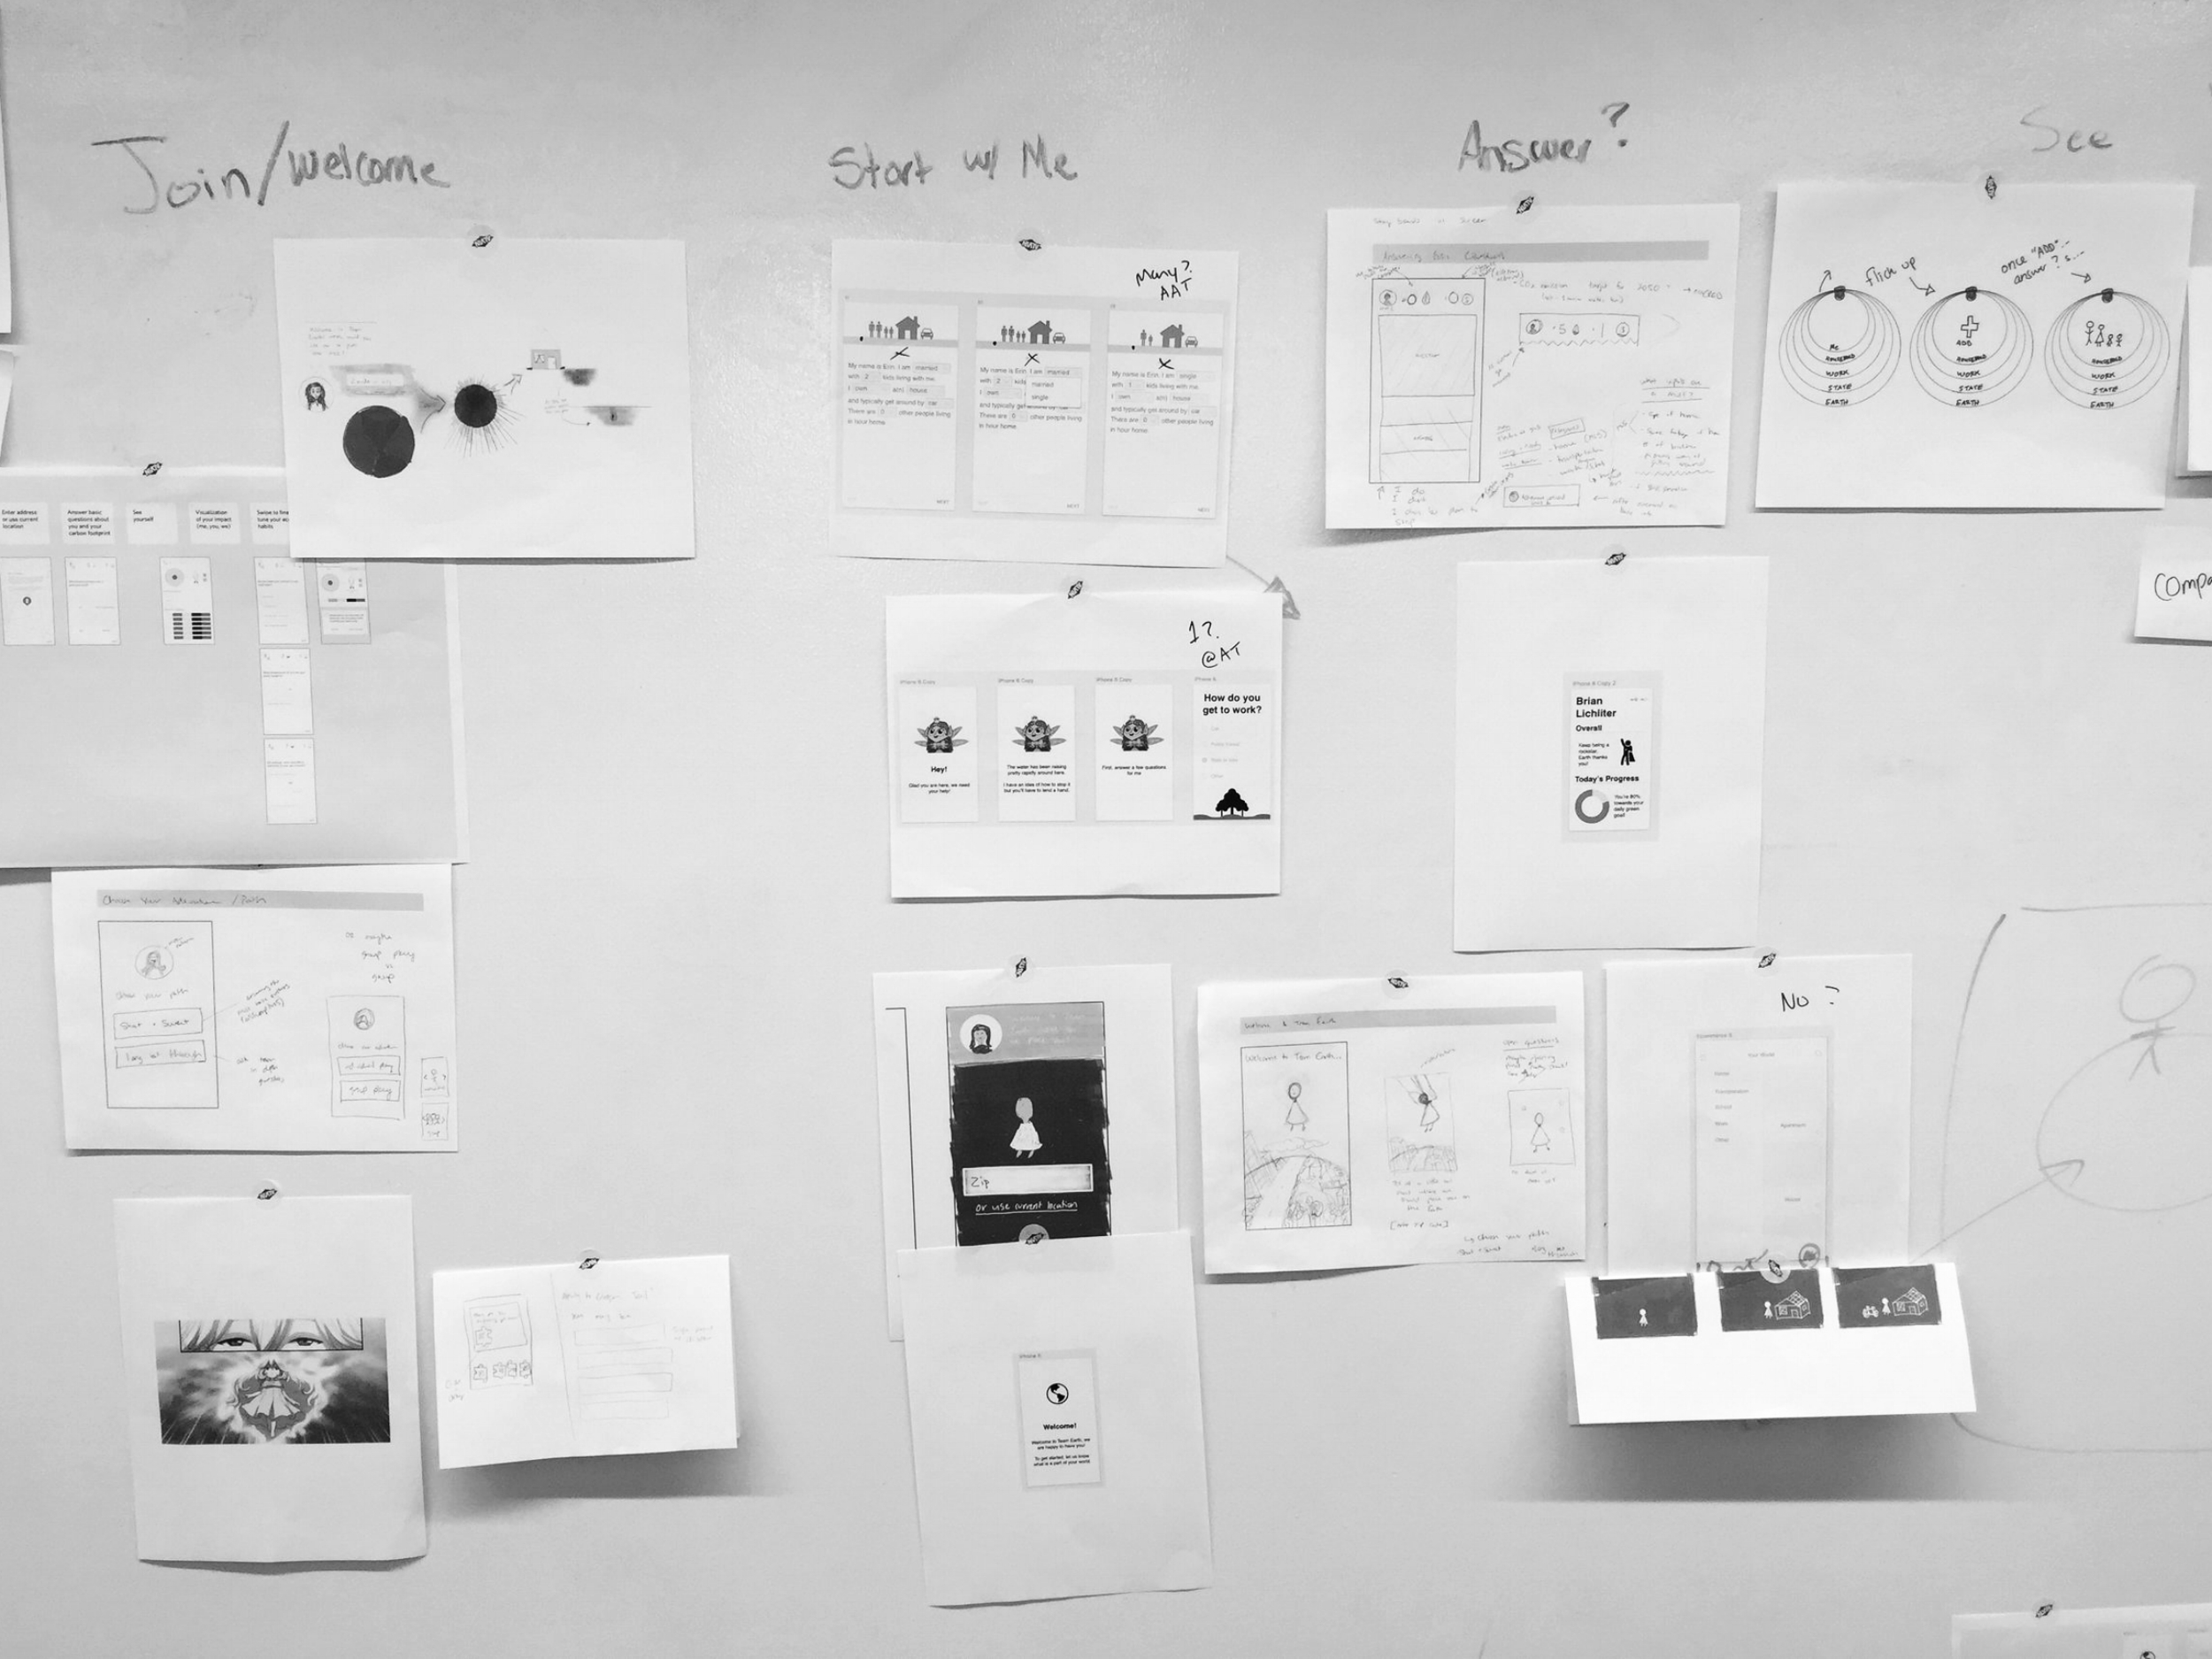 Ideation Mapping